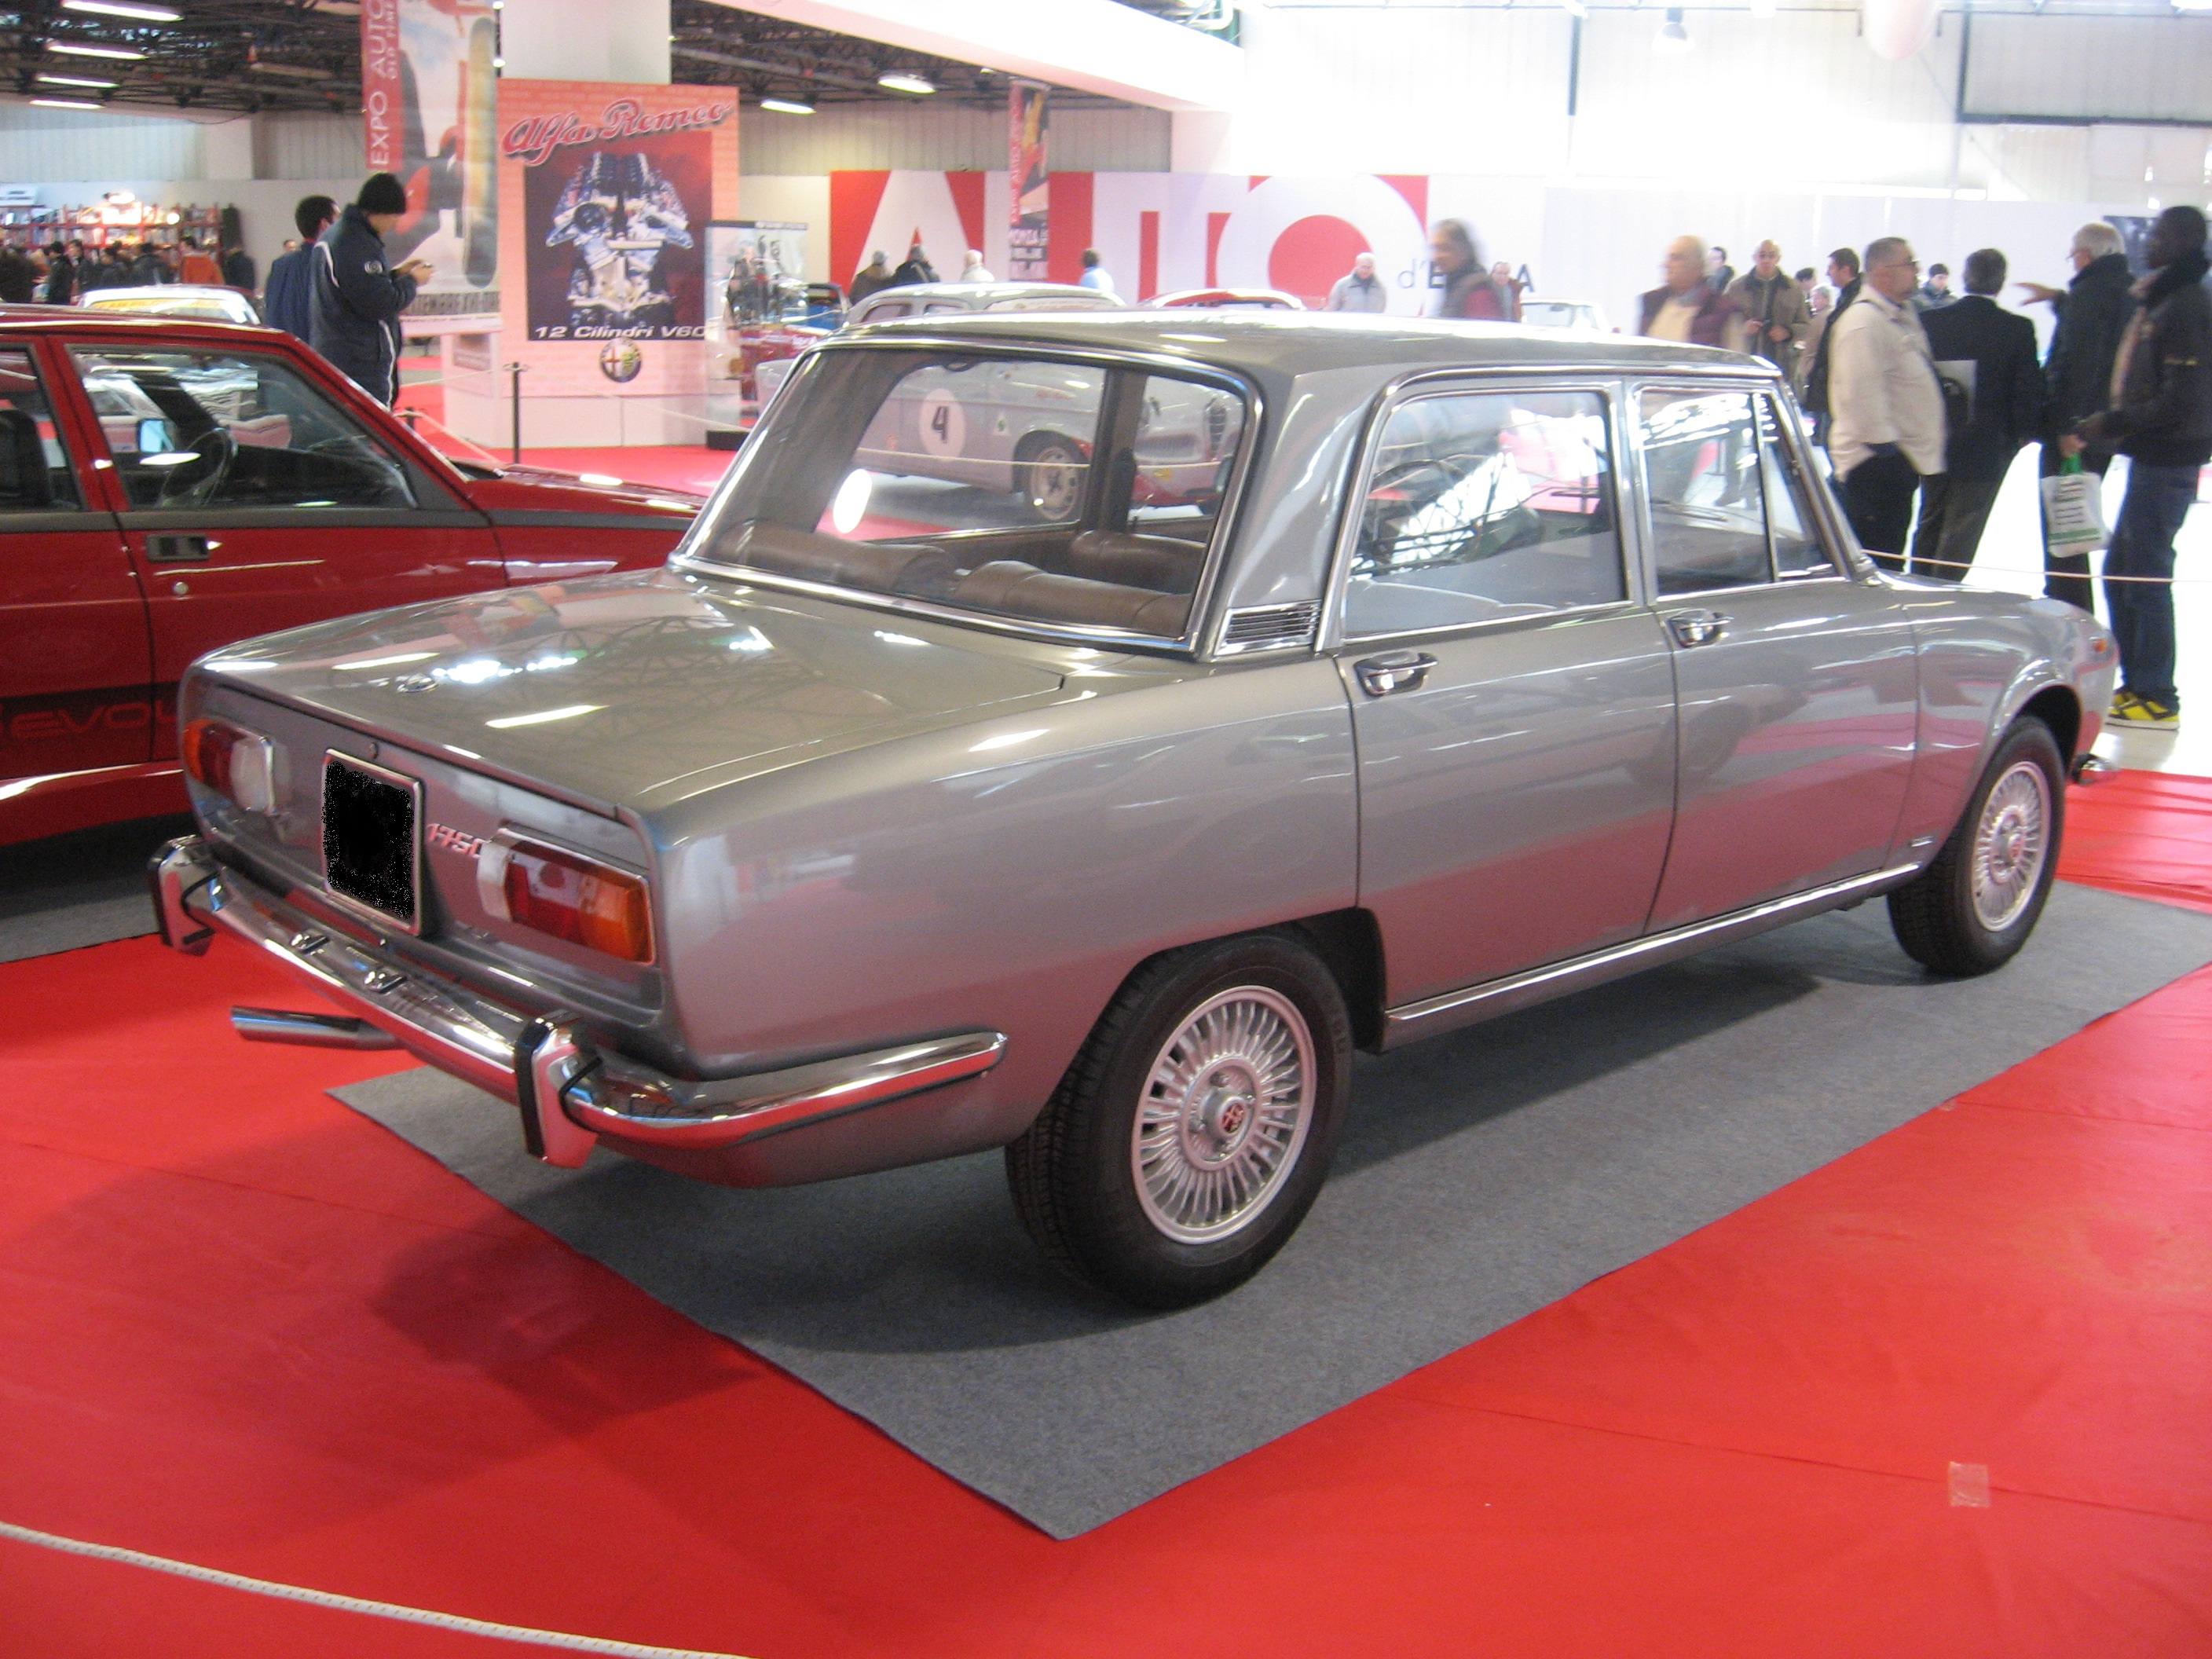 File:Alfa Romeo 1750 berlina grey-rear.JPG - Wikimedia Commons